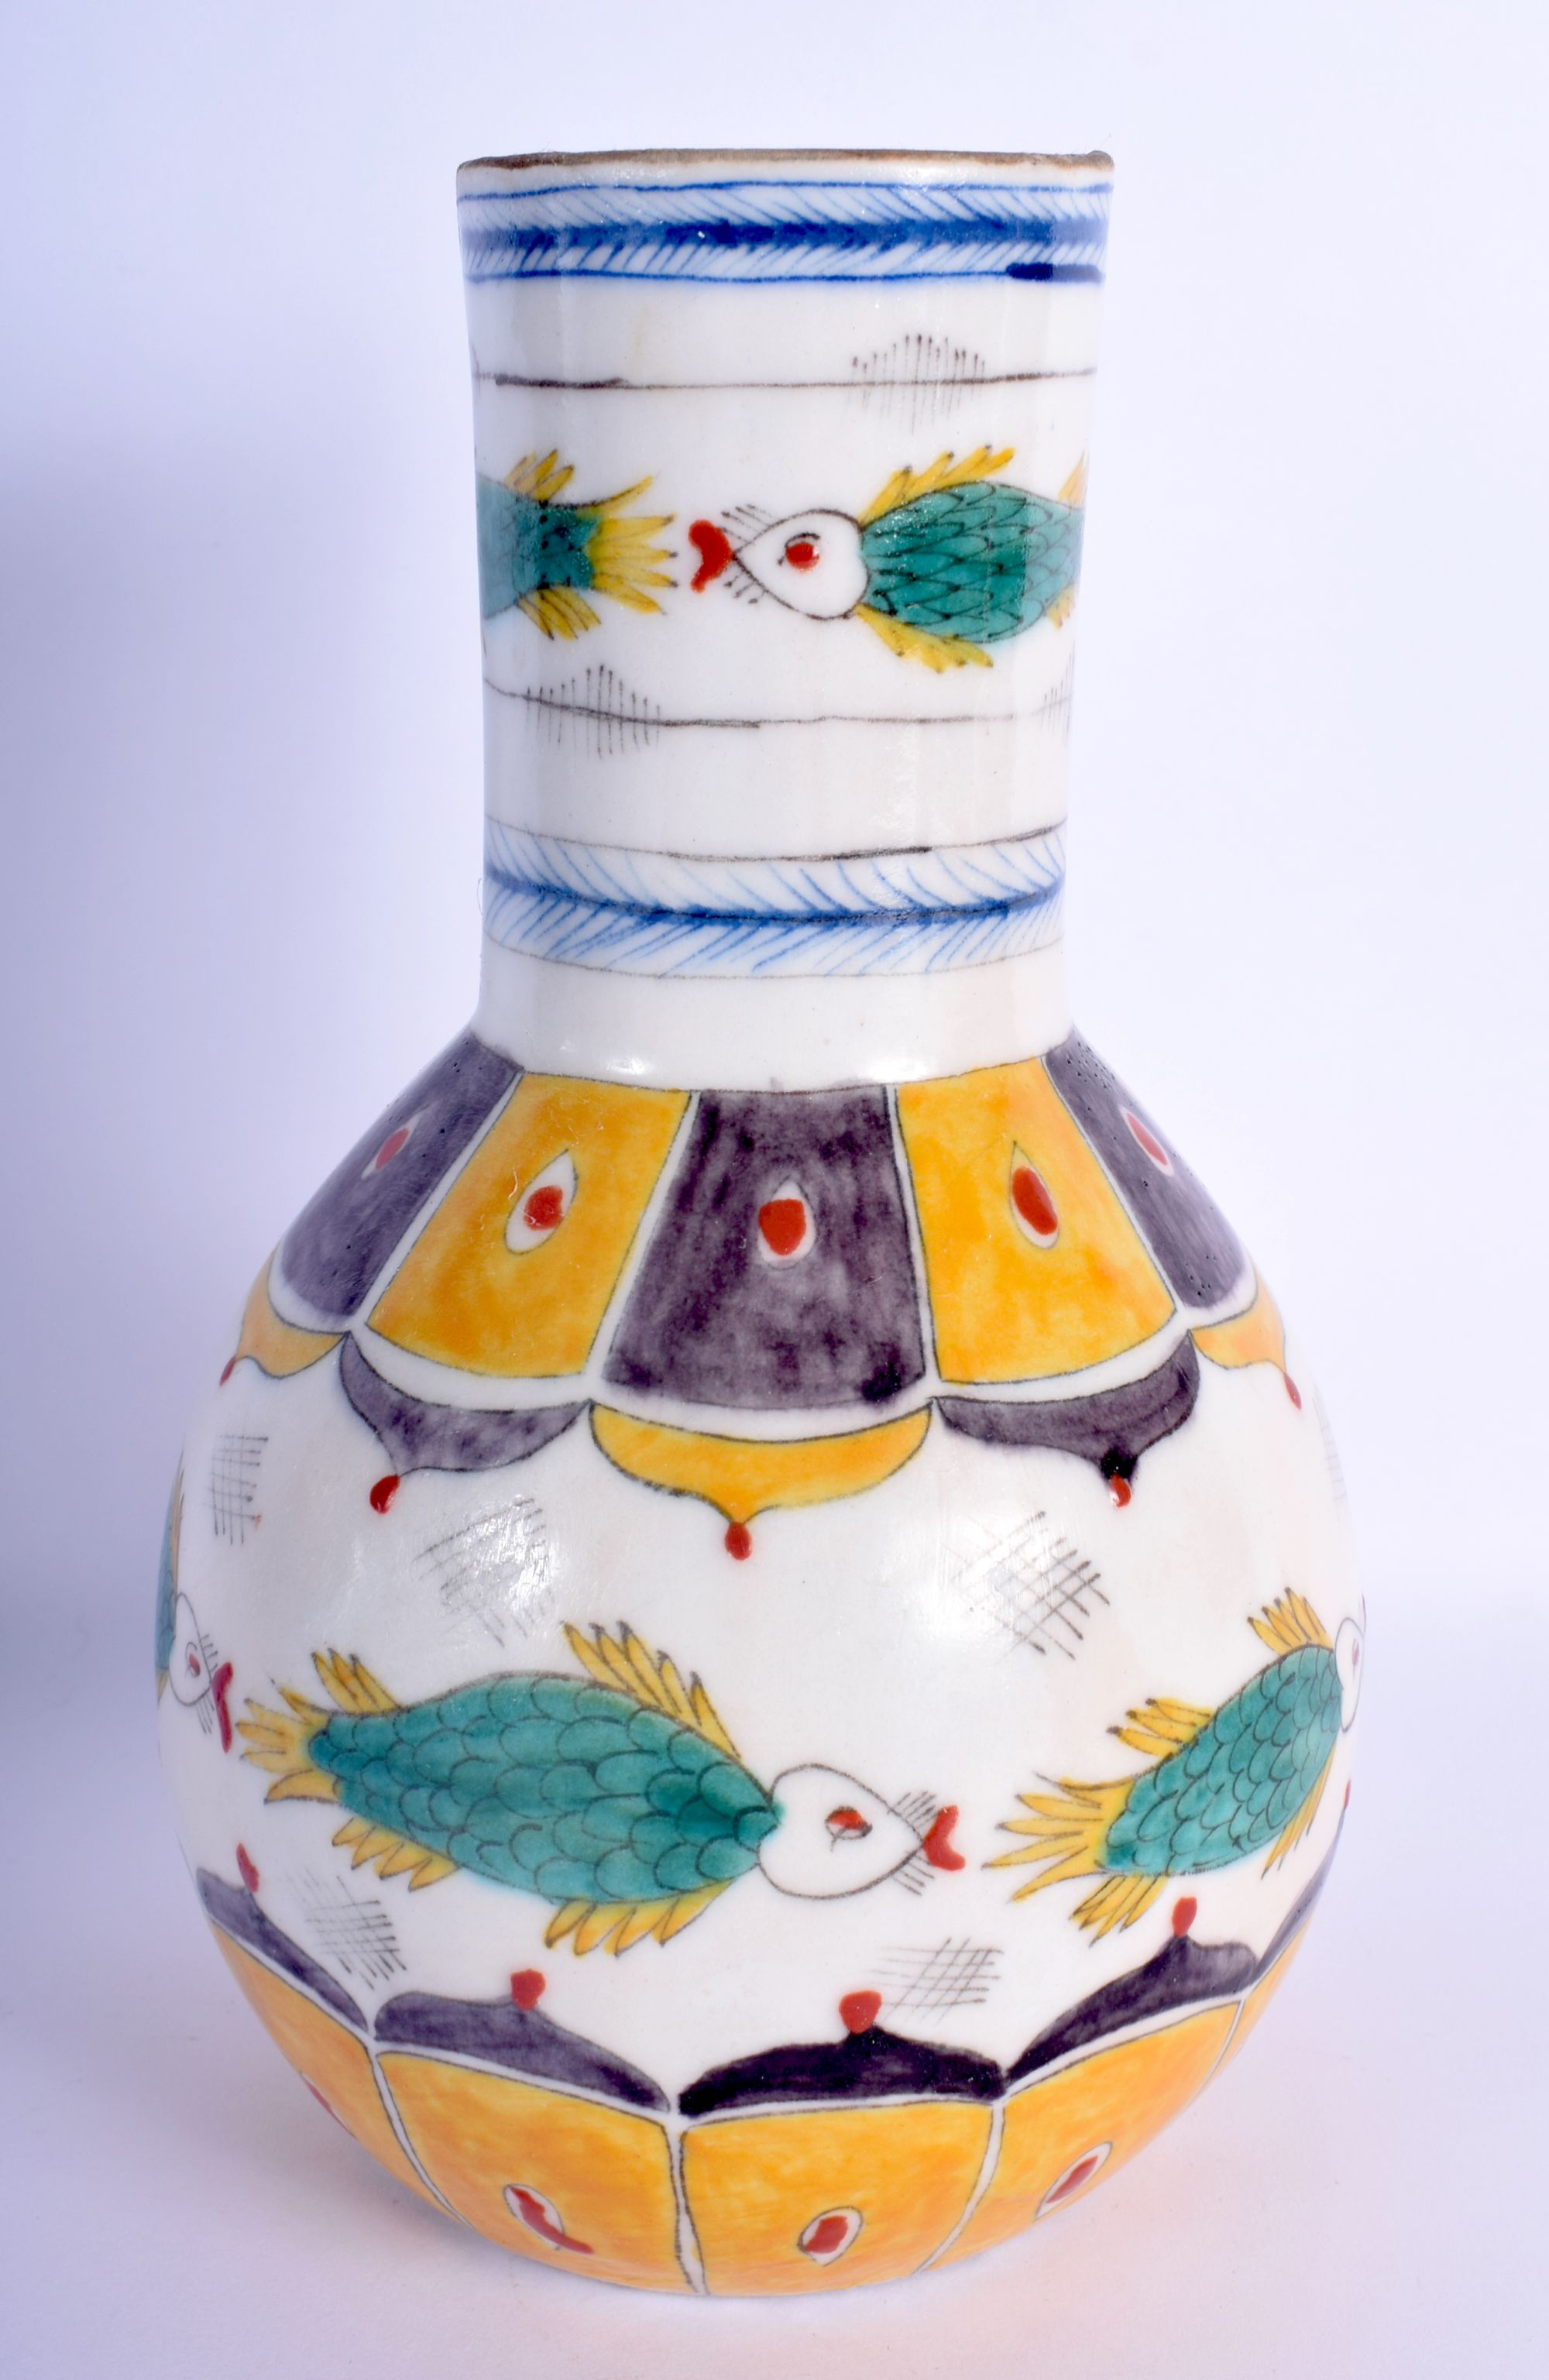 A TURKISH OTTOMAN KUTAHYA FAIENCE TYPE VASE painted with floral sprays. 22 cm high. - Image 2 of 3